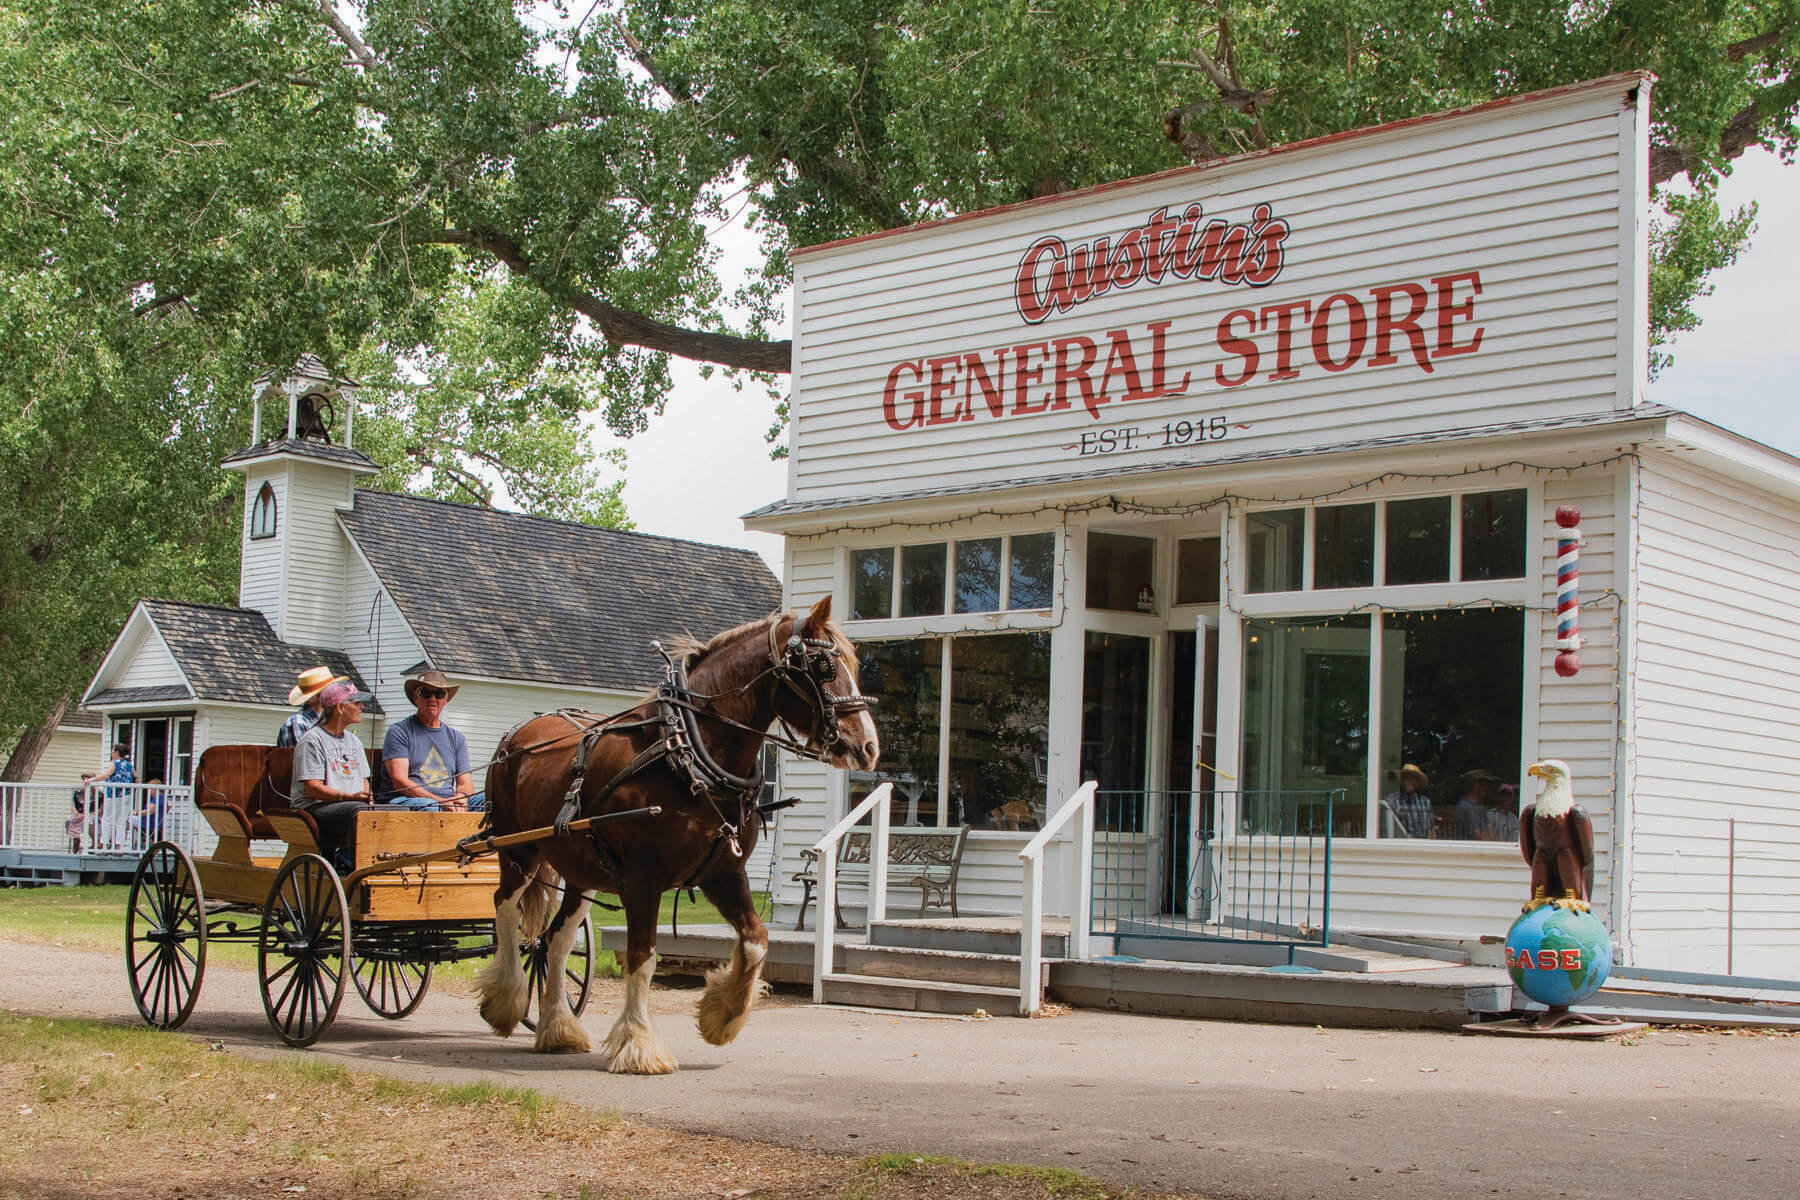 A cart and horse ride by the General Store at the Medicine Hat Exhibition grounds.